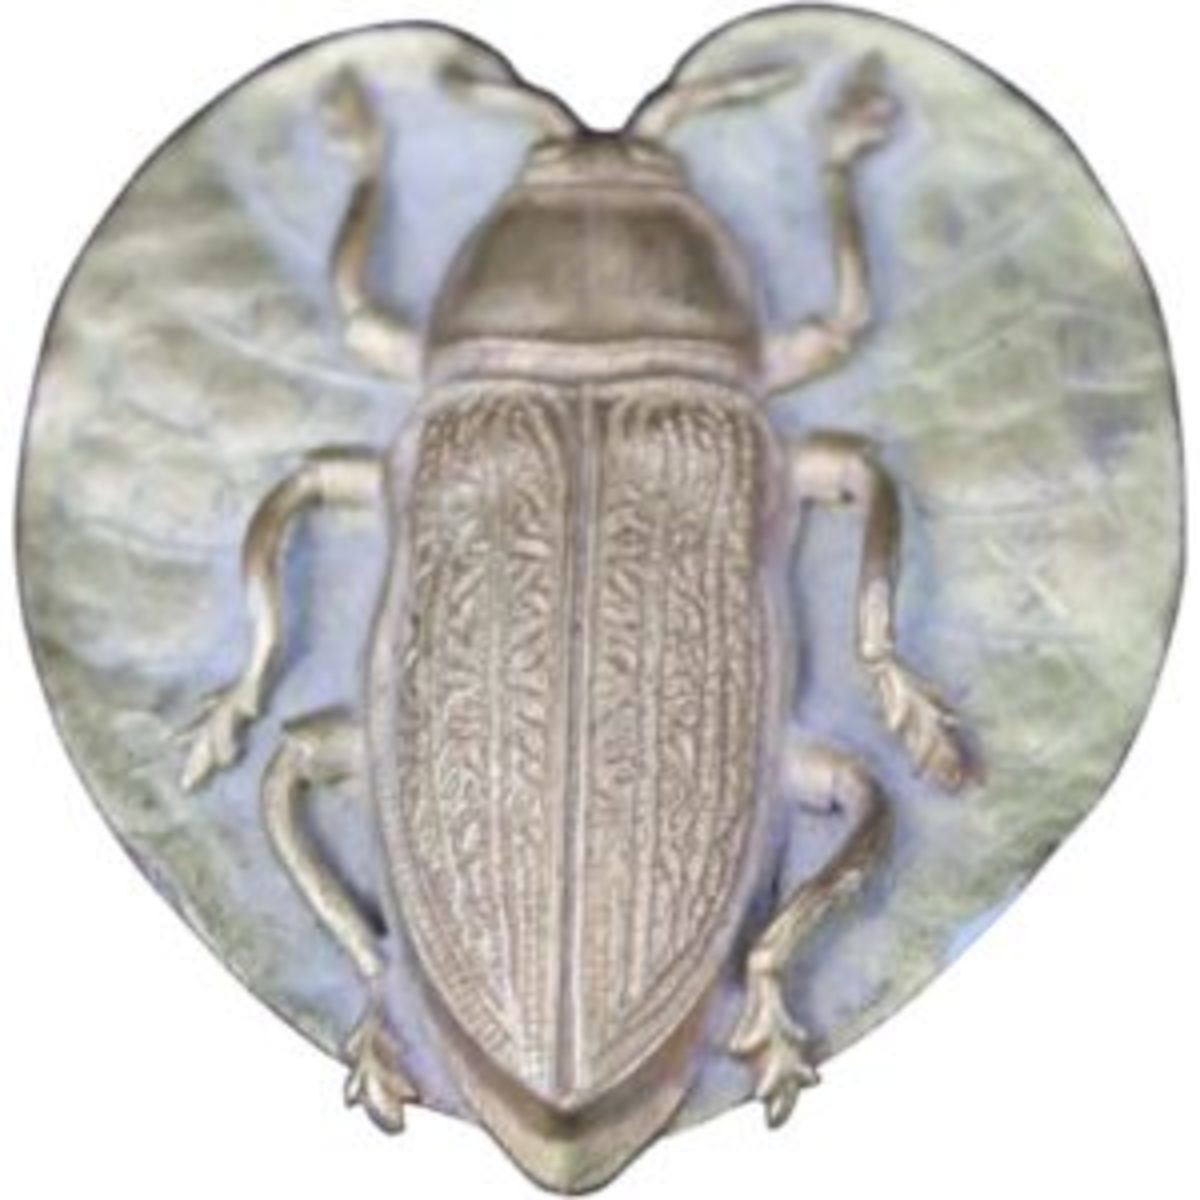 The antique Aesthetic Movement - Art Nouveau era hatpin features a scarab beetle on a heart shaped leaf. The pin is solidly attached to the leaf but there is a slight amount of movement at the joint as well the leaf is tilted to one side. $395. Available from David Lesurf Antiques and Art on Ruby Lane, https://bit.ly/2KCTmPX